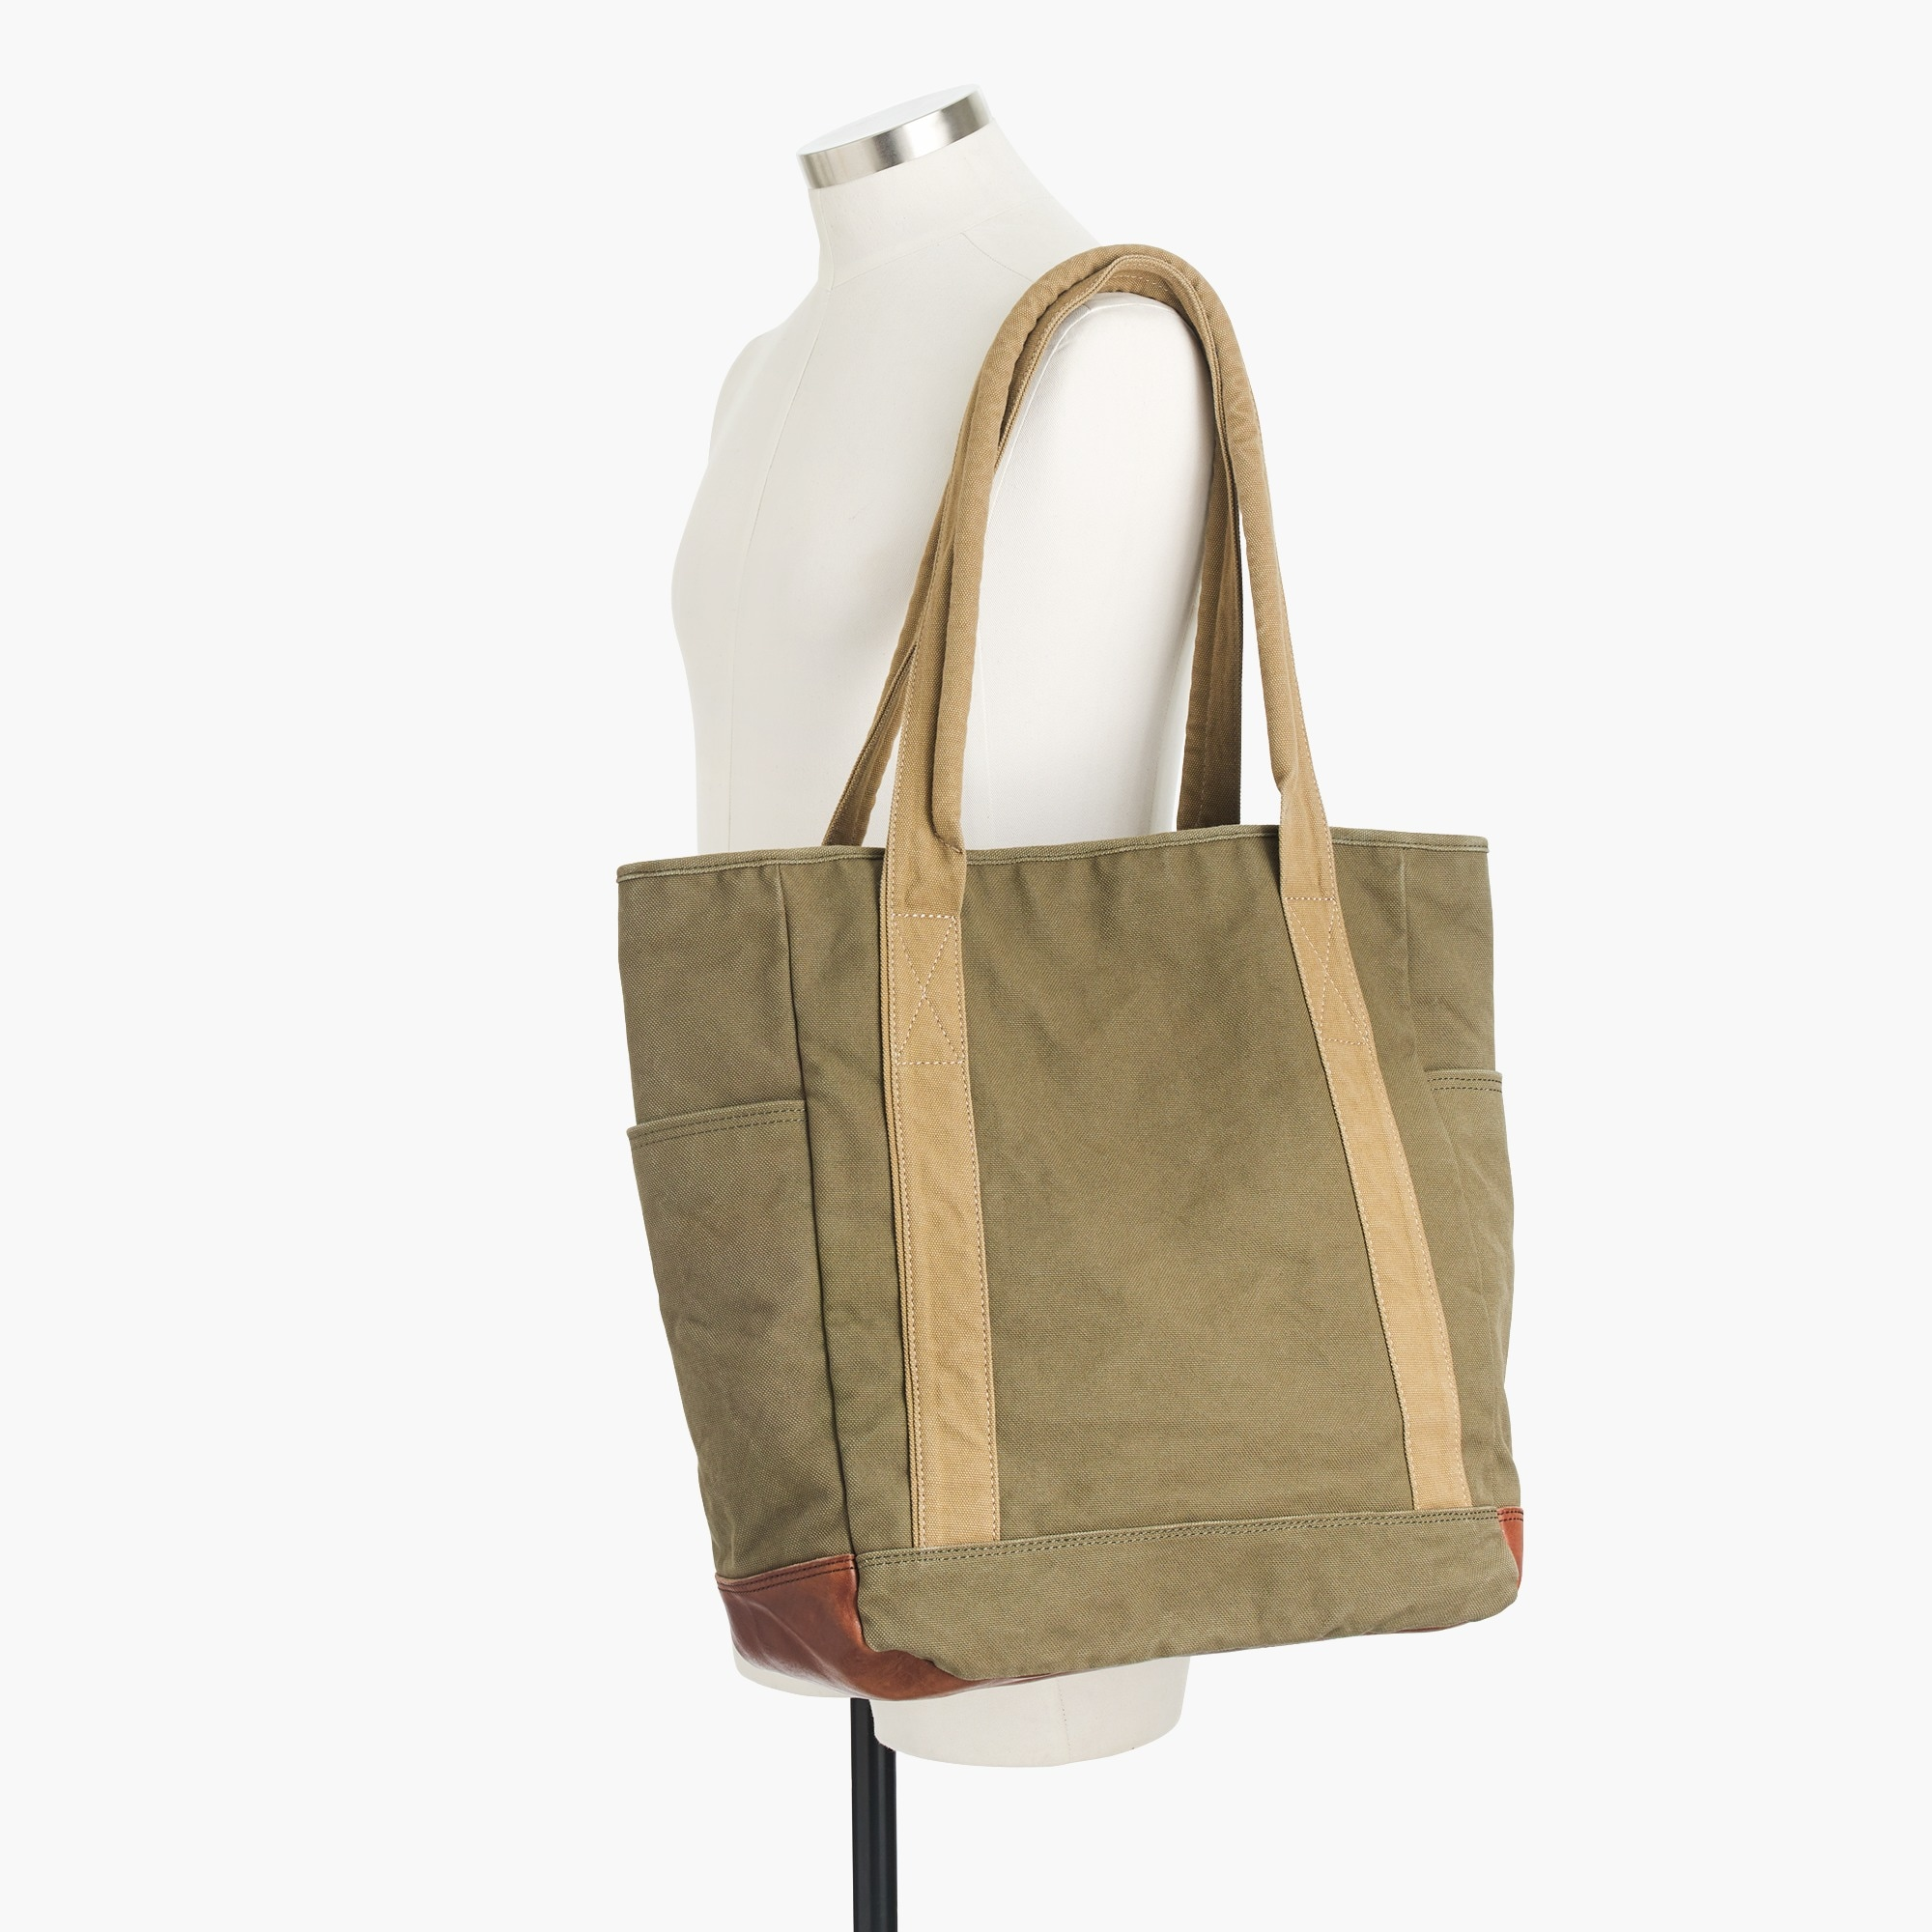 Image 3 for Wallace & Barnes canvas tote